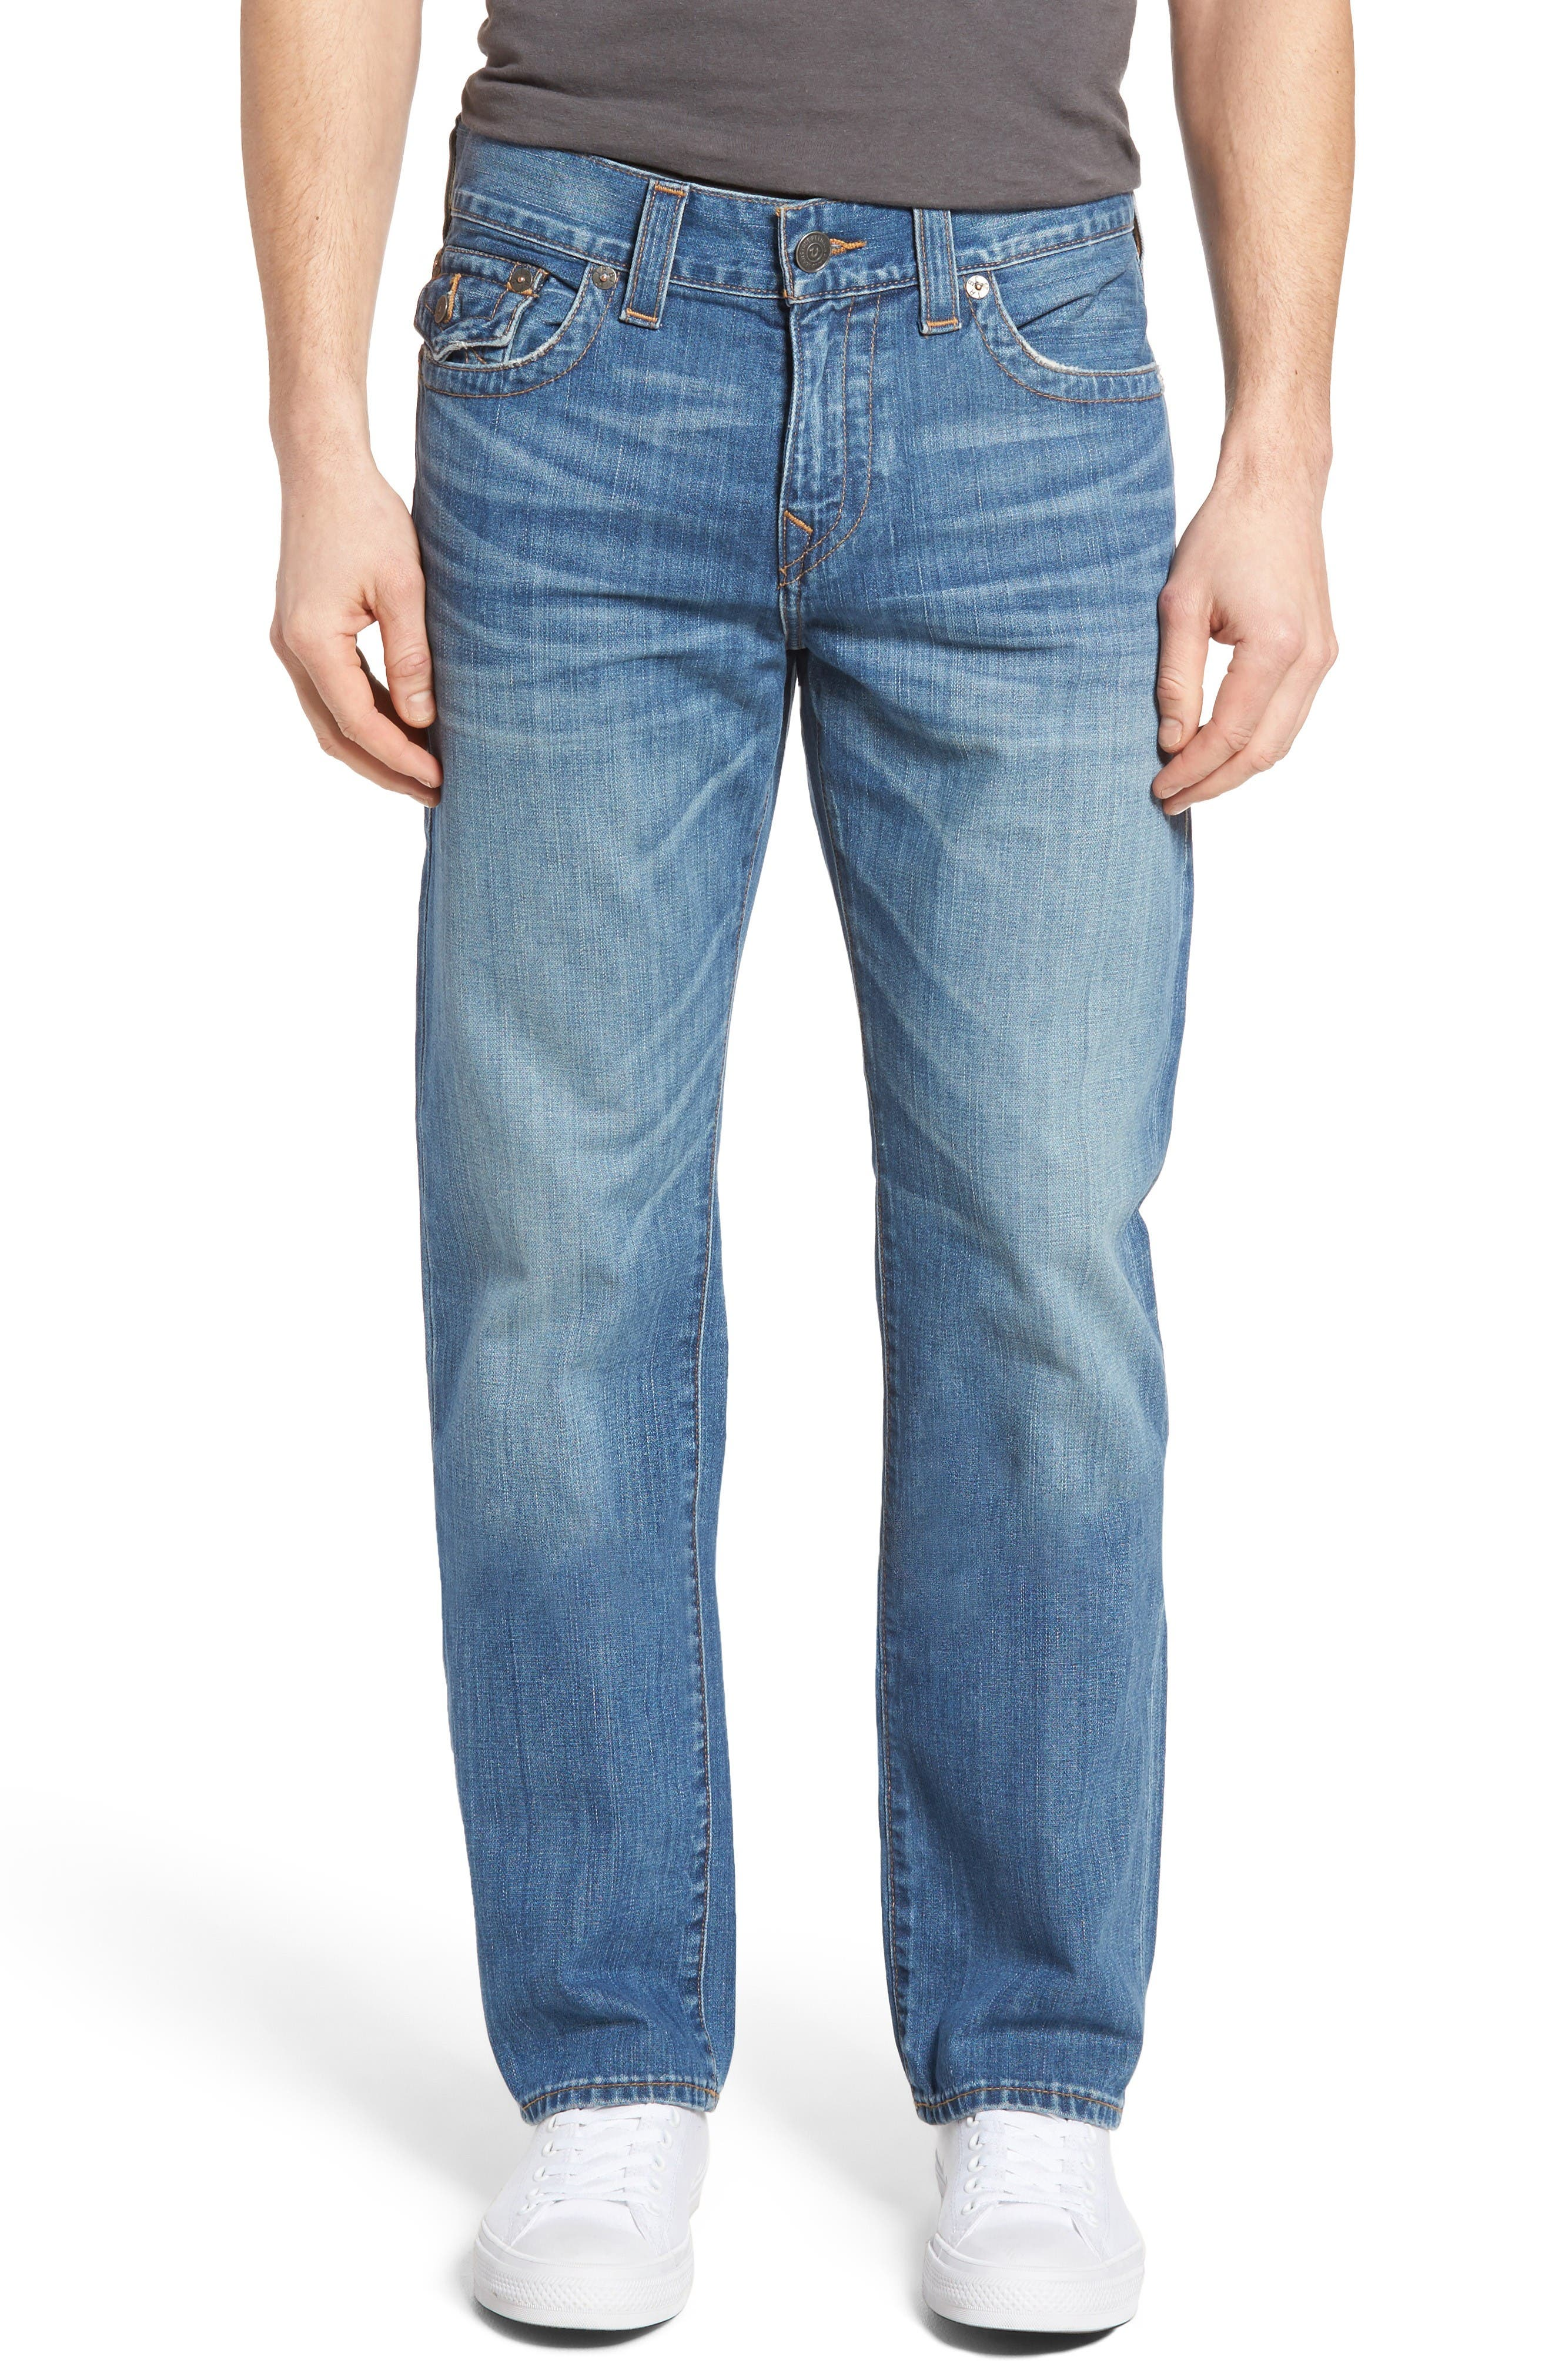 True Religion Brand Jeans Ricky Relaxed Fit Jeans (Dust Cloud) (Regular & Big)